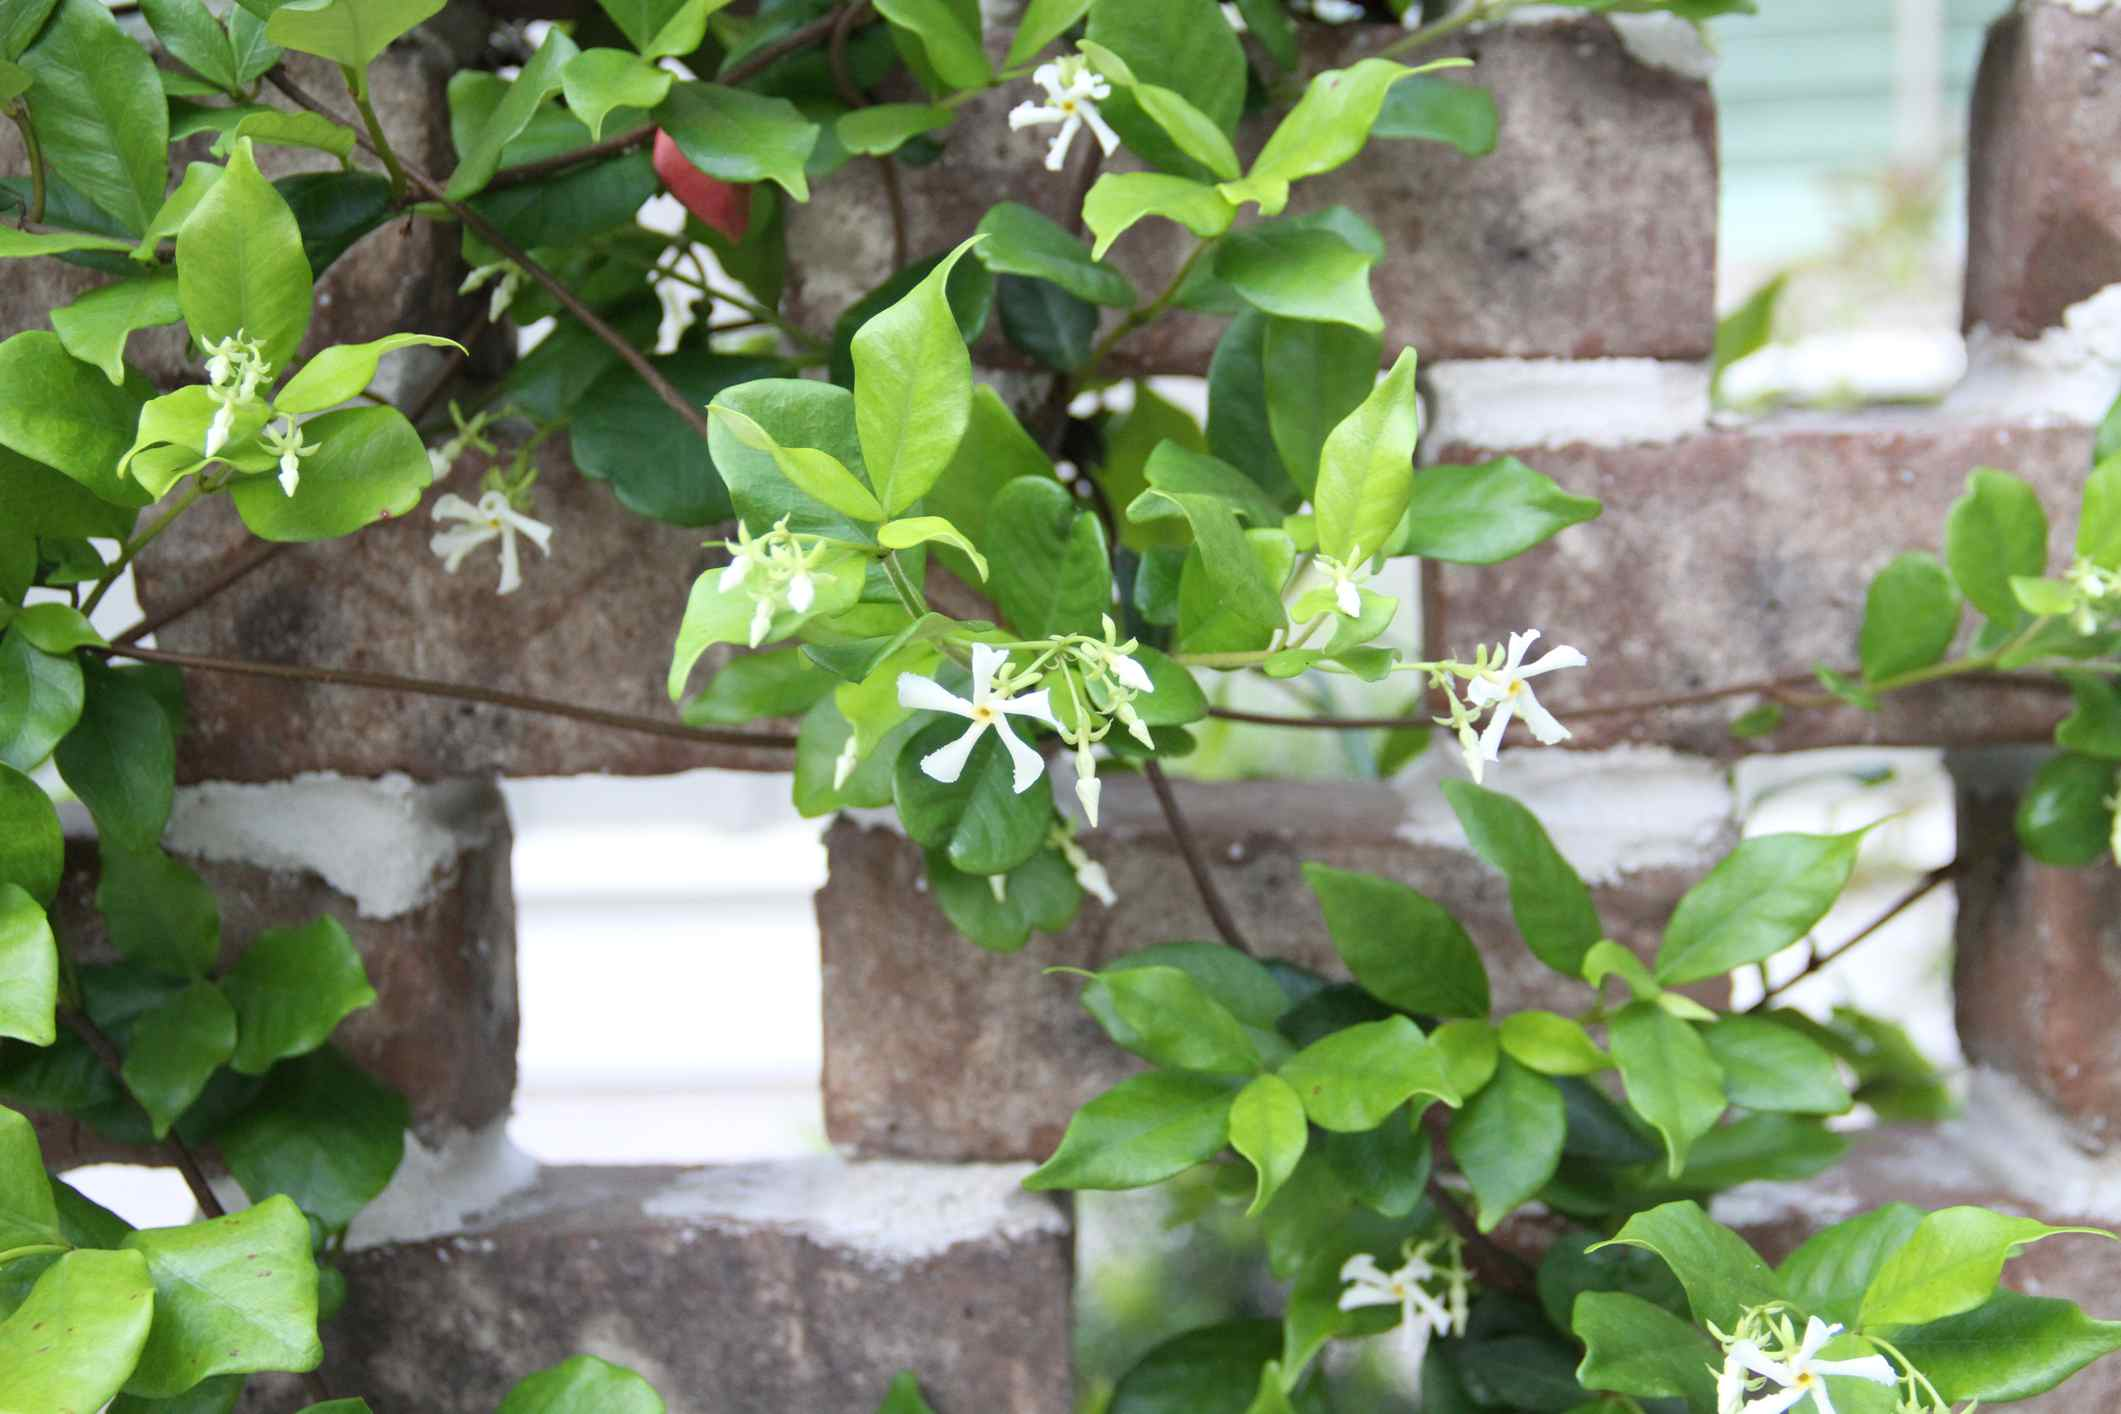 Confederate jasmine vine flowering while climbing a wall.